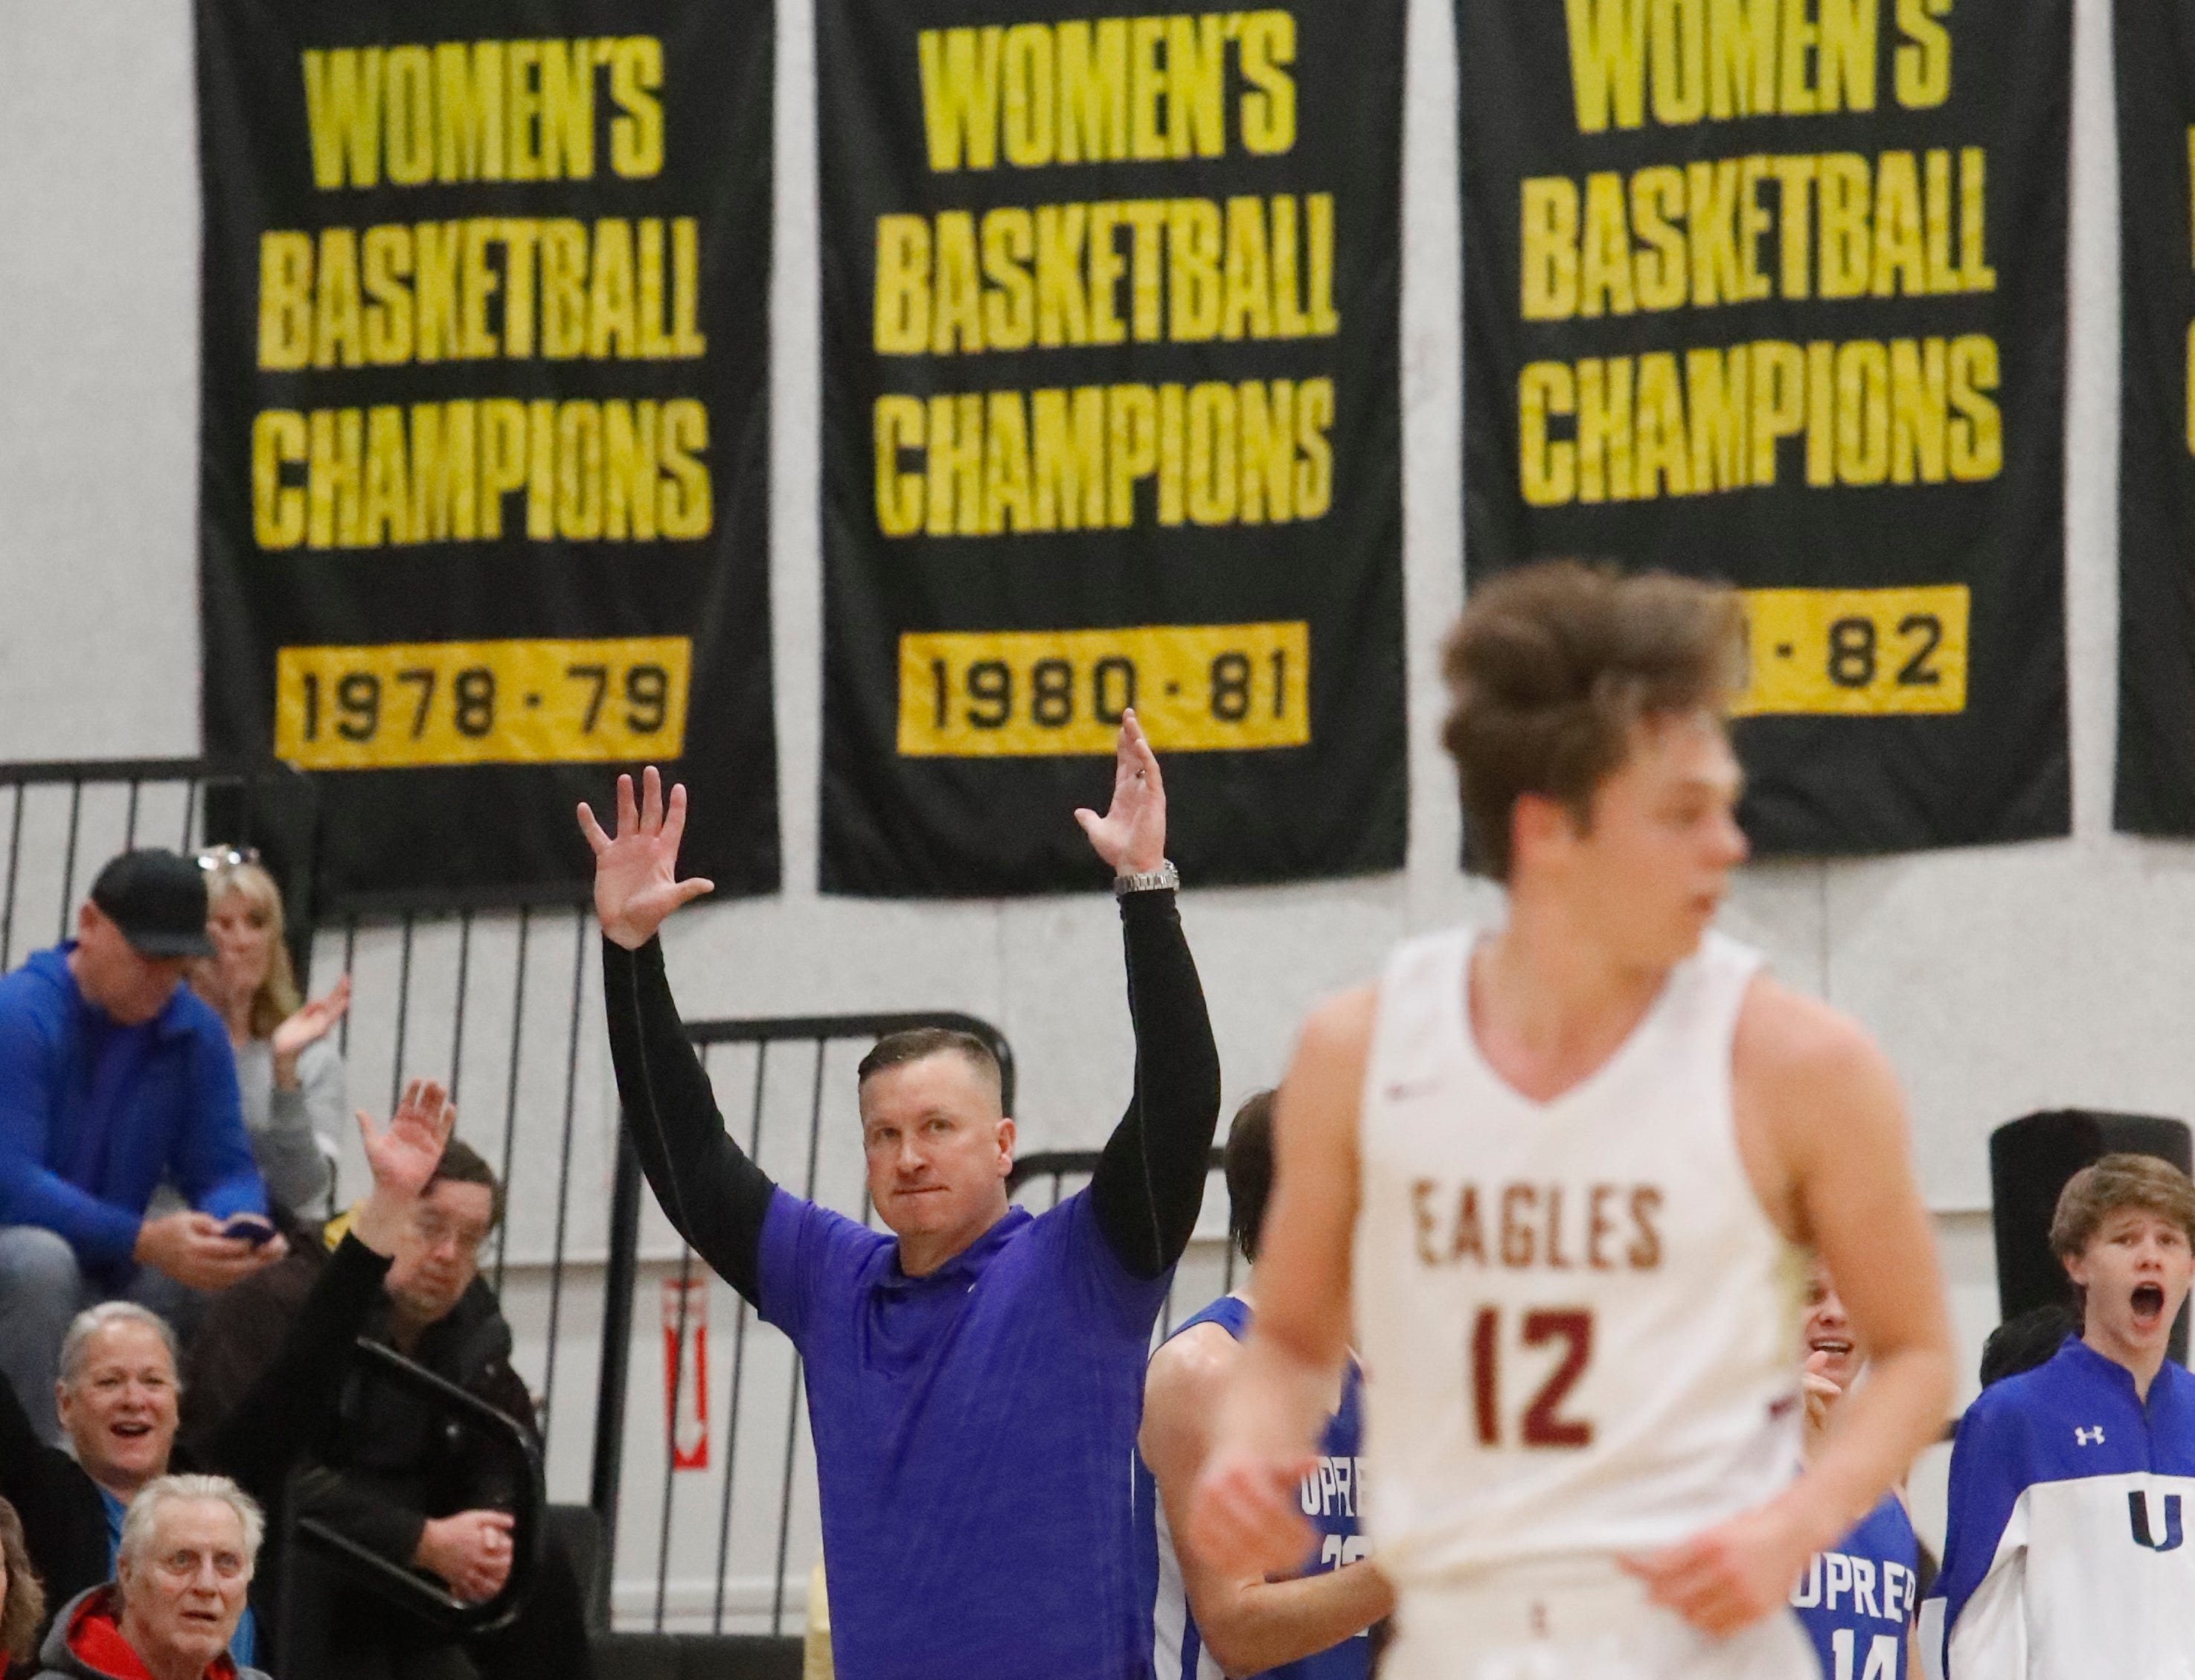 U-Prep beat West Valley, 53-42, to win the Division IV Northern Section championship at Butte College on Friday, Feb. 22.